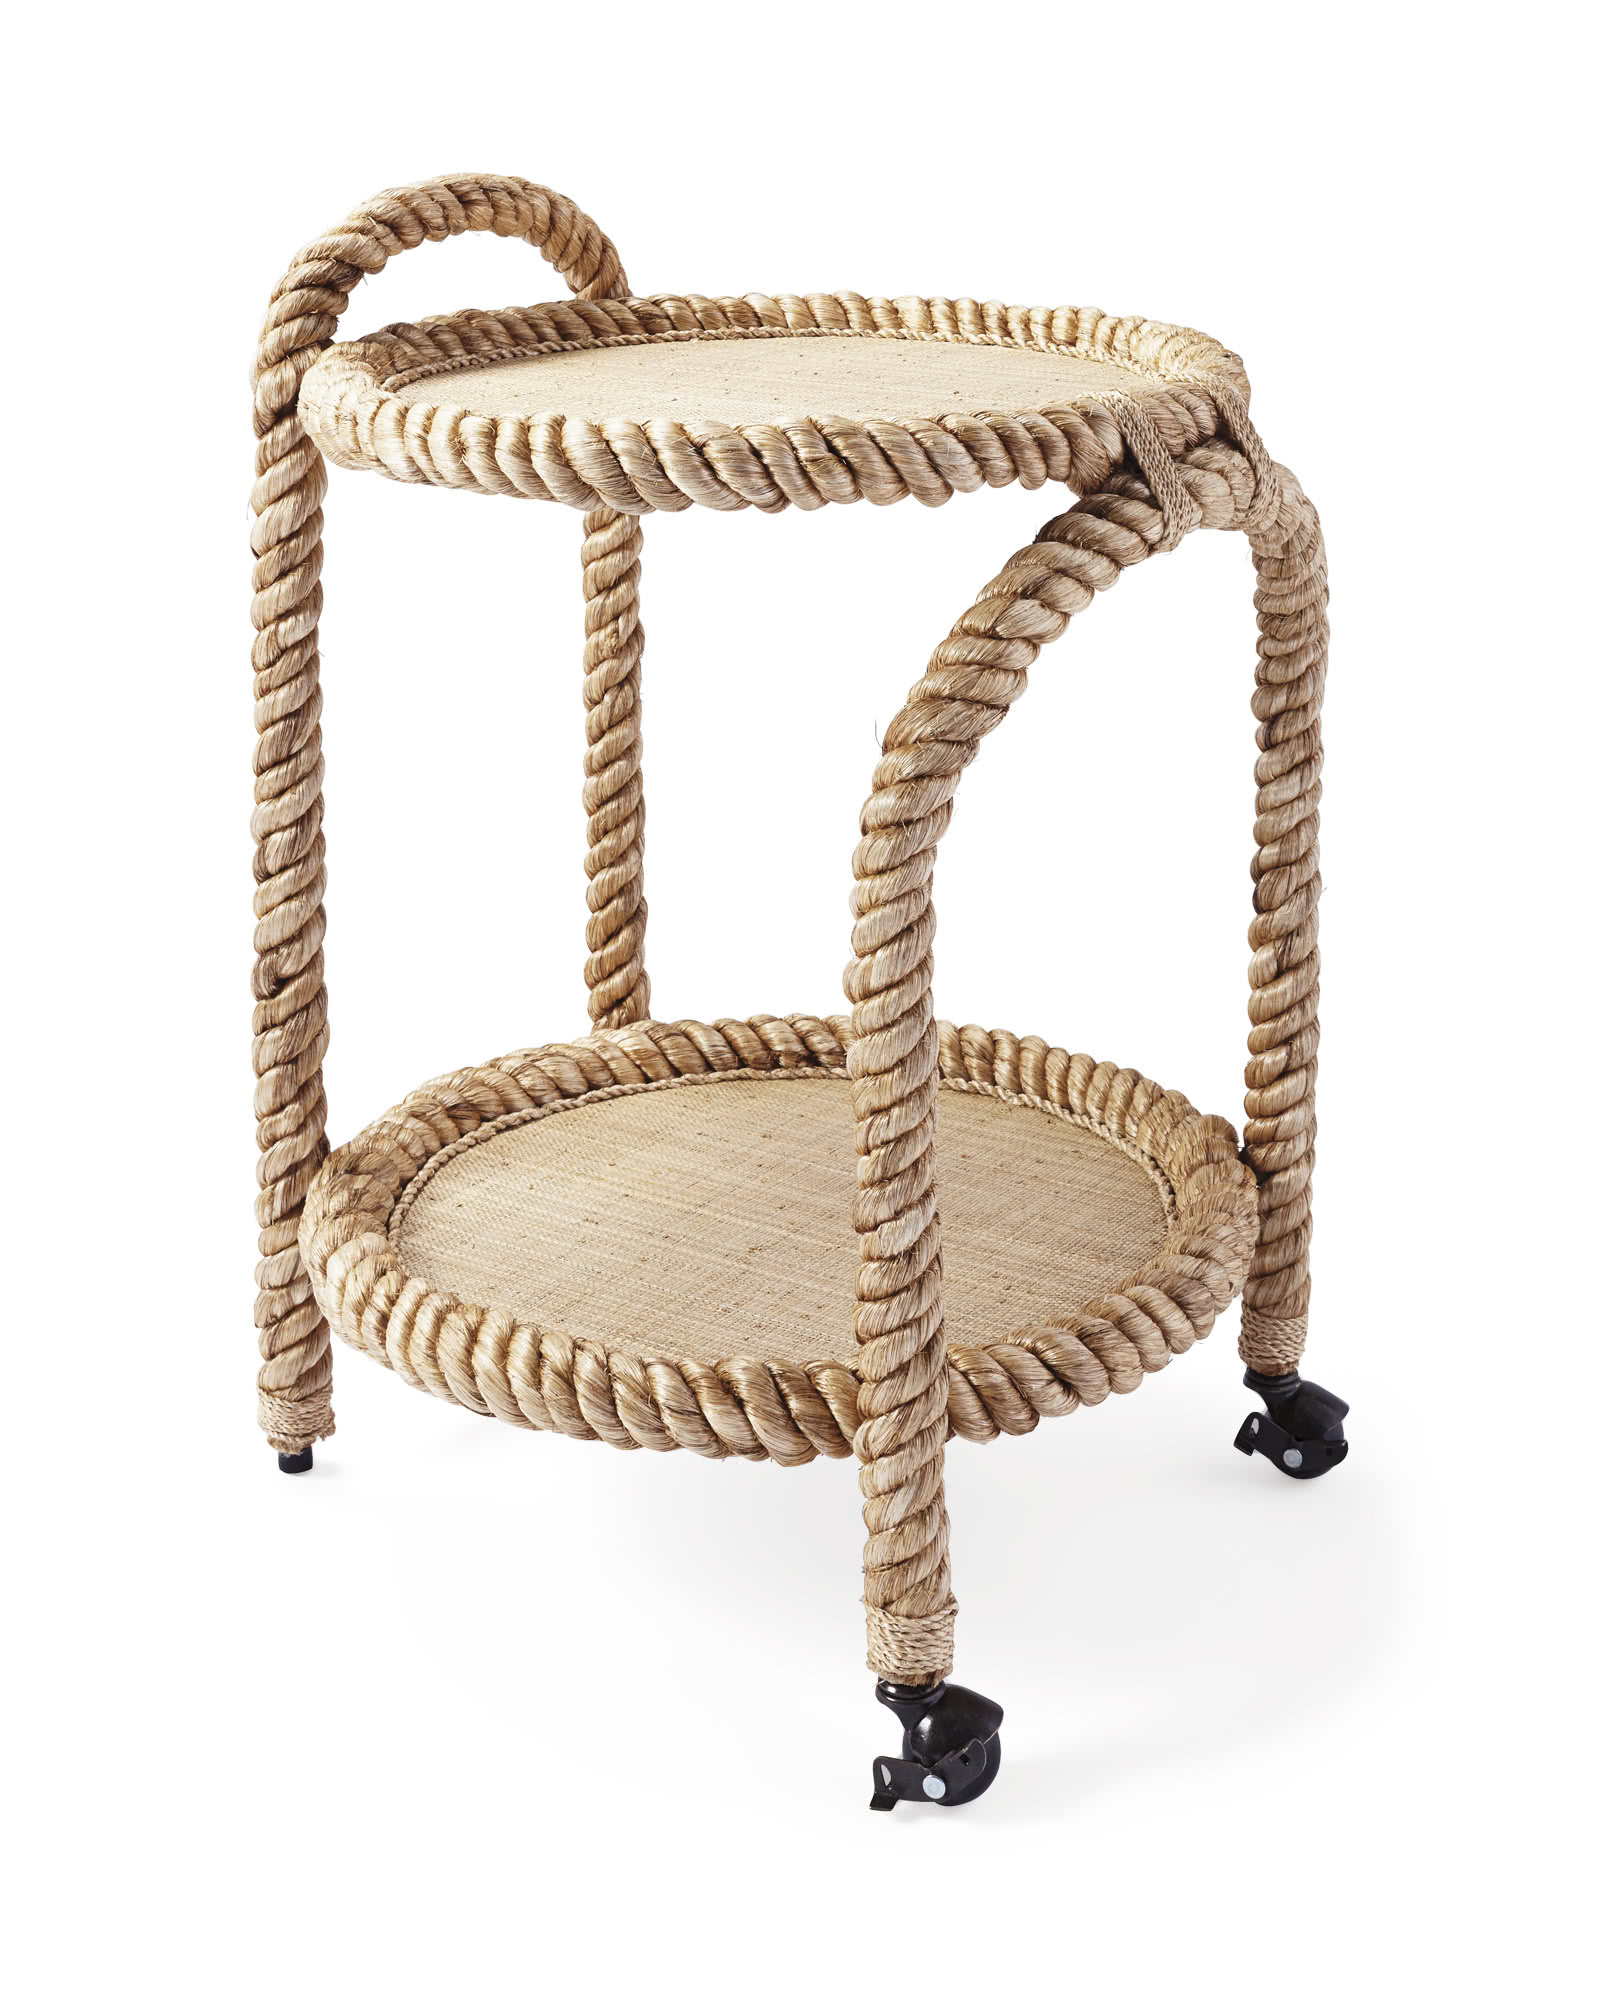 Cordage Marin Décoration Marin Rope Bar Cart Serena And Lily